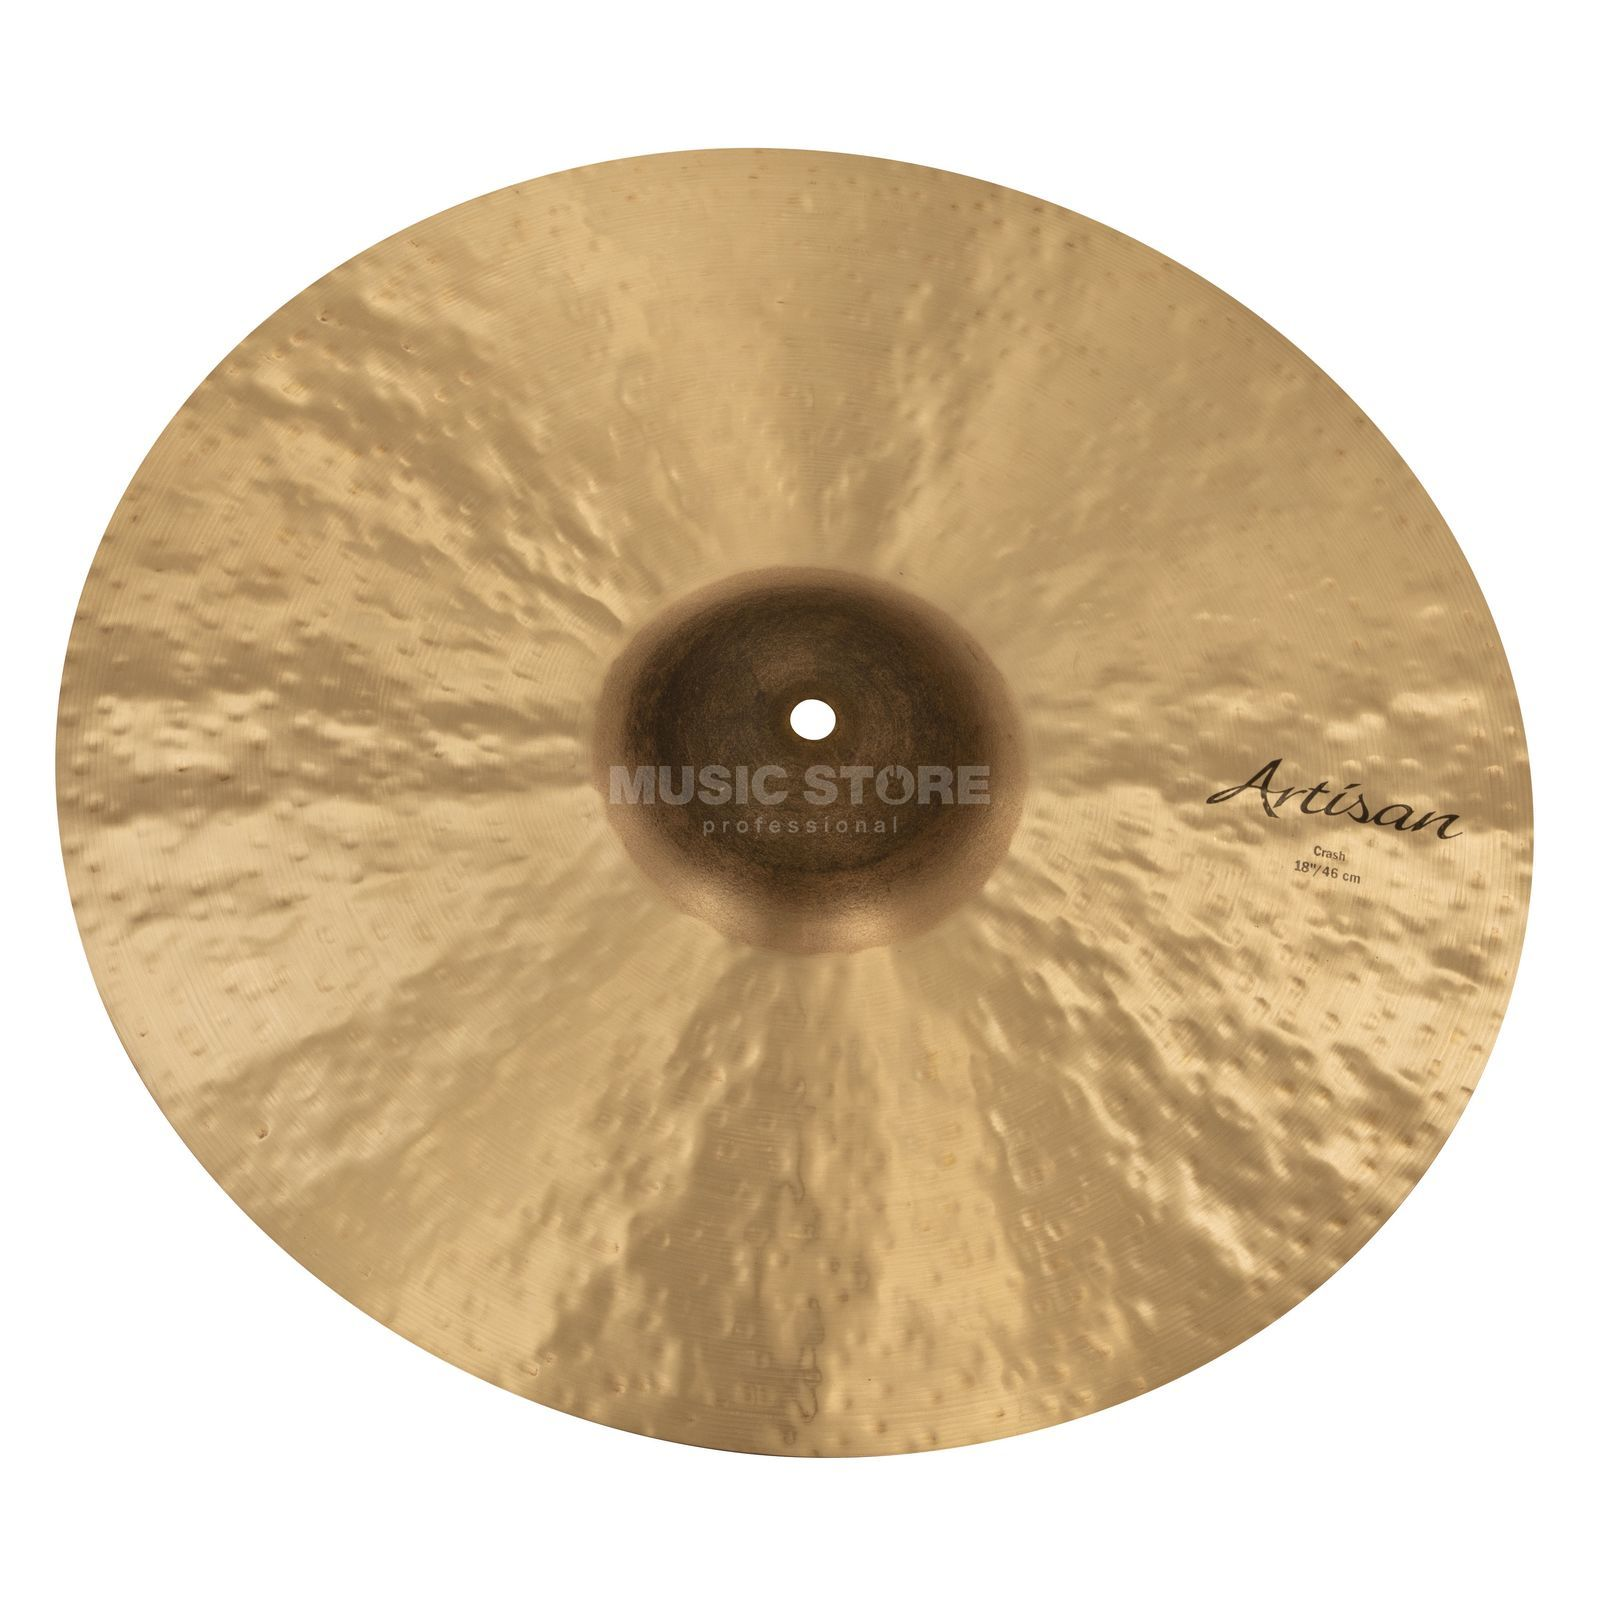 "Sabian Artisan Thin Crash 18"", Natural Finish Produktbild"